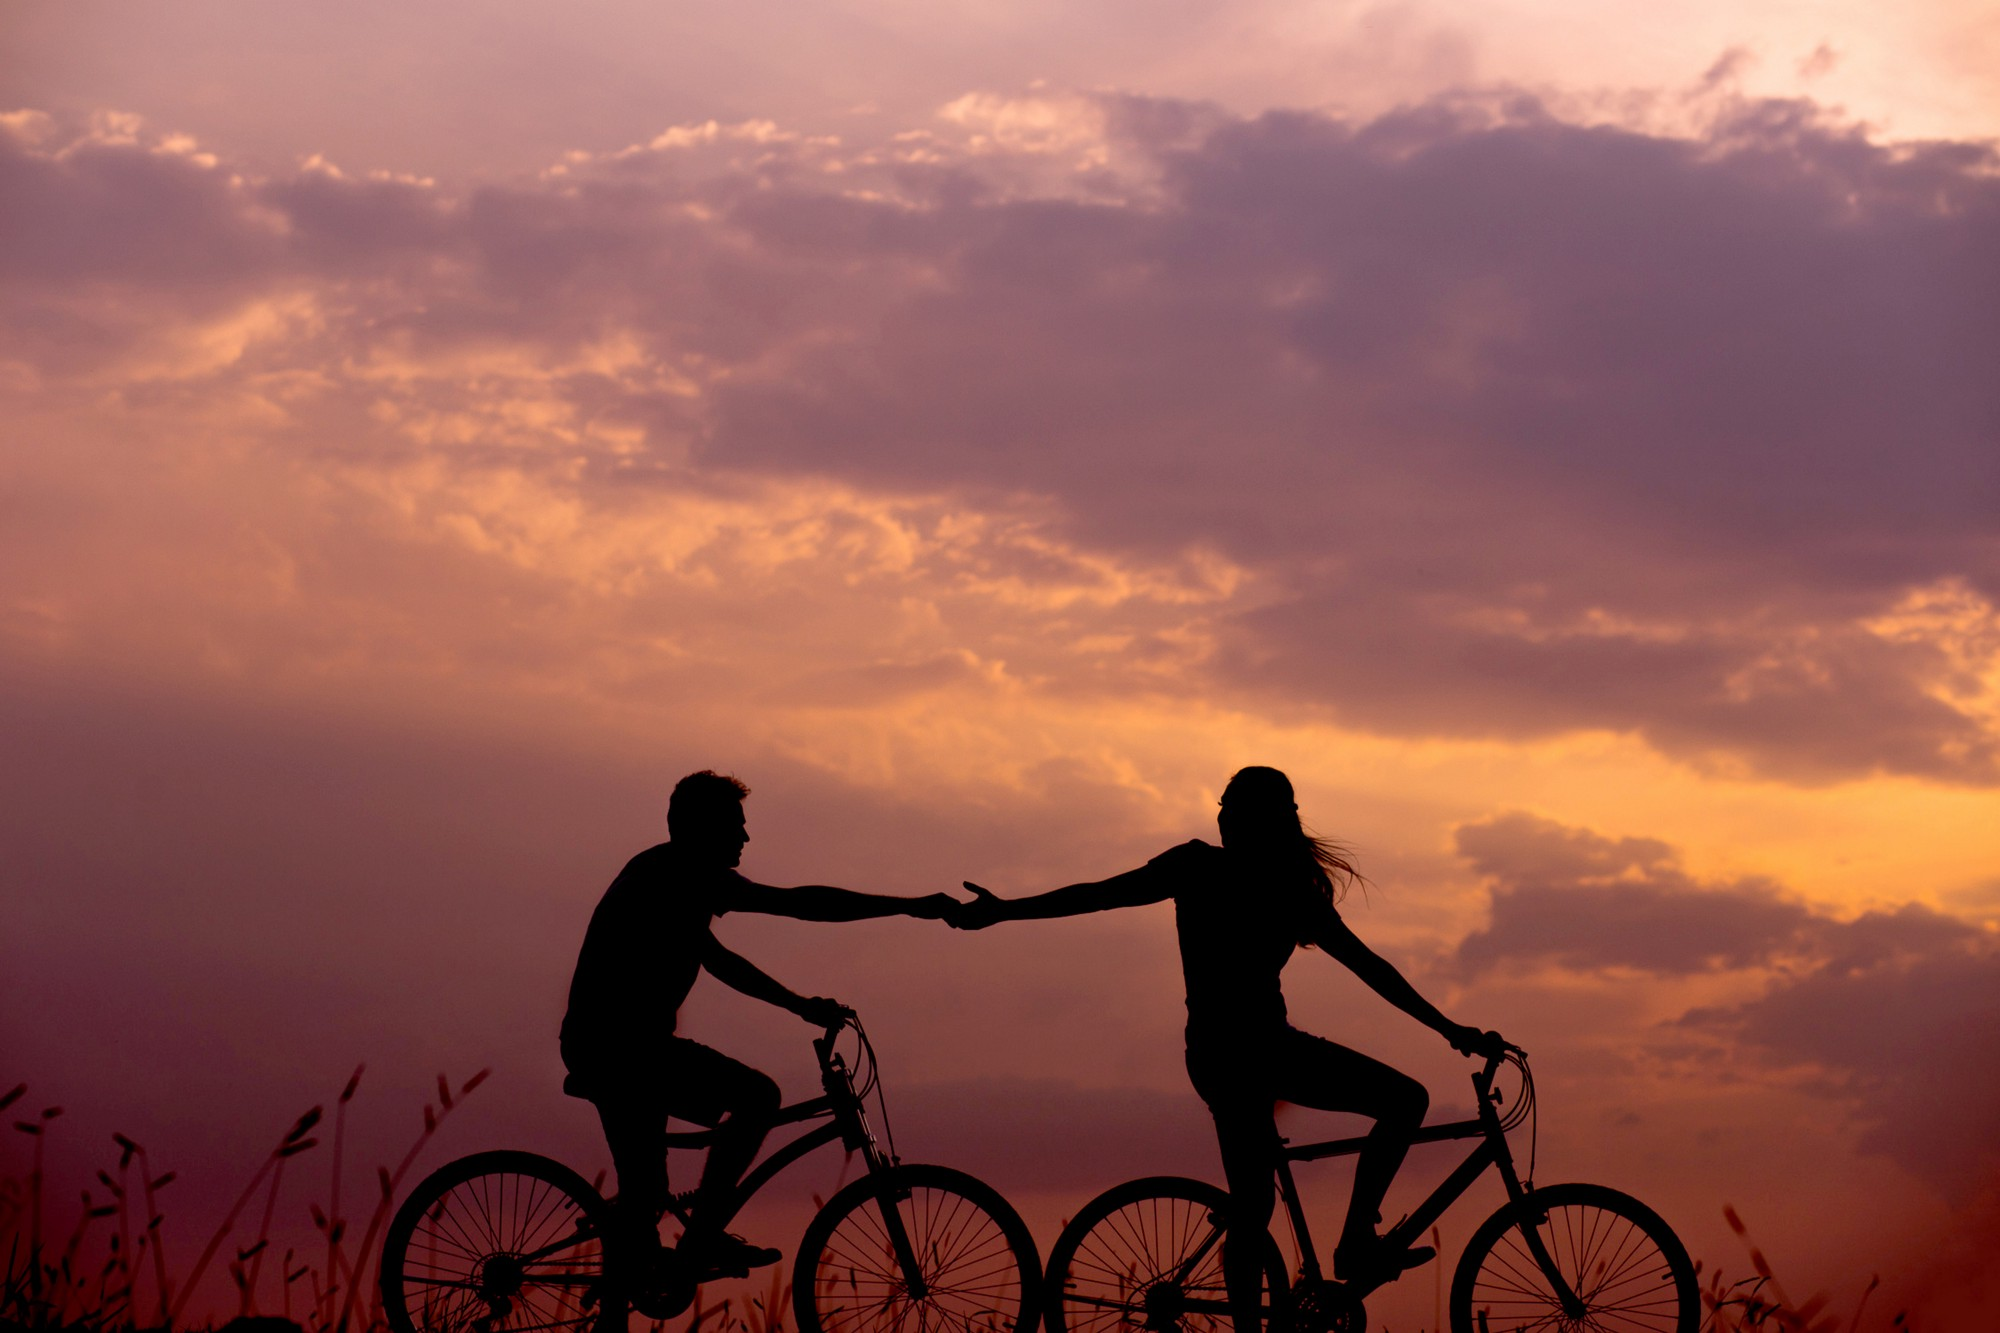 A cyclist reaching out to help another